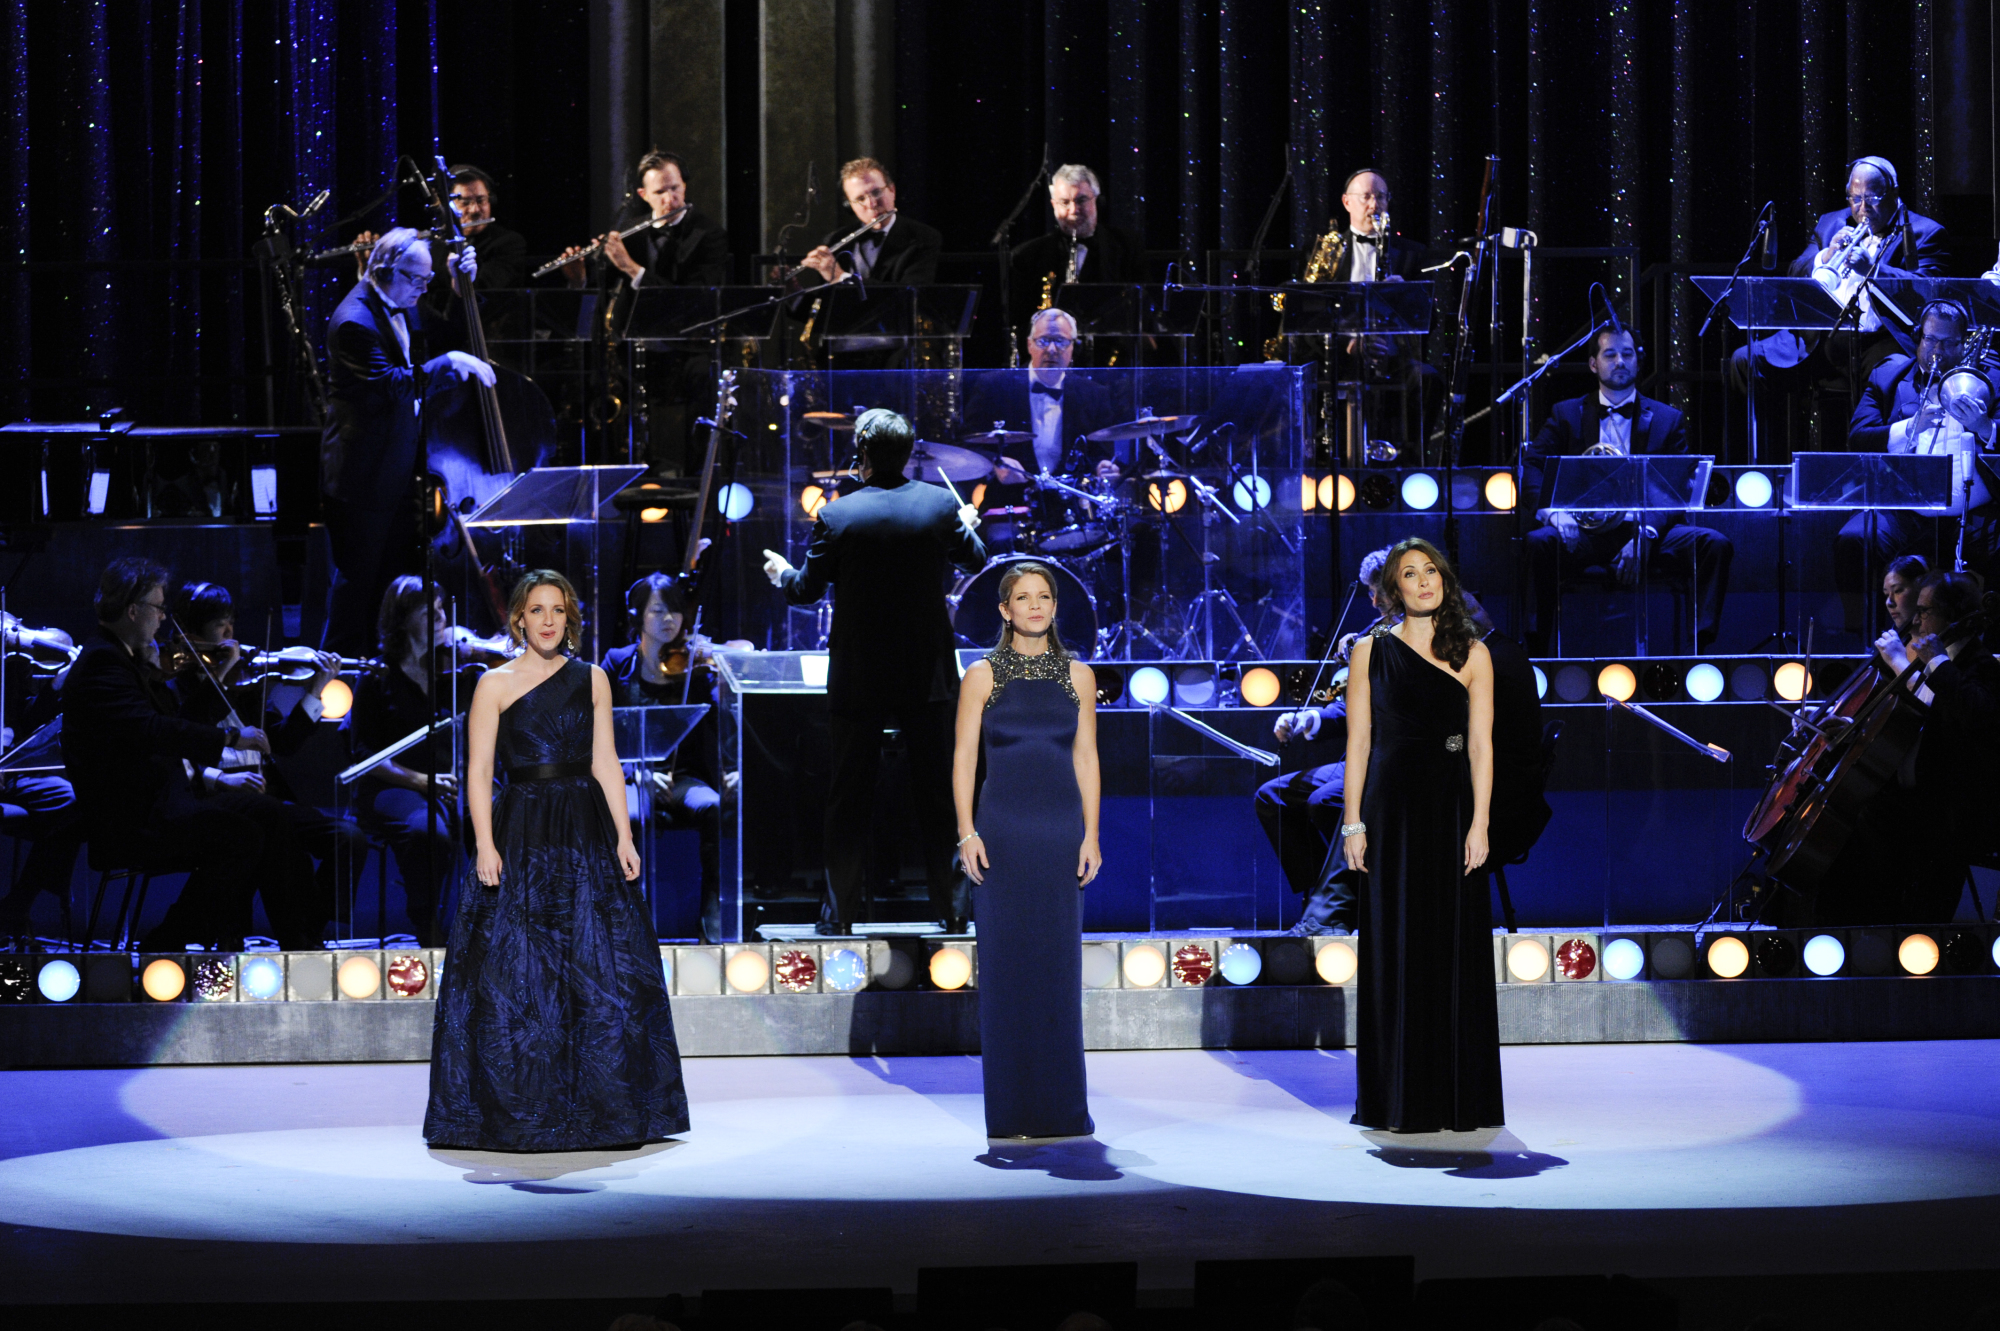 Jessie Mueller, Kelli O'Hara, and Laura Benanti Perform